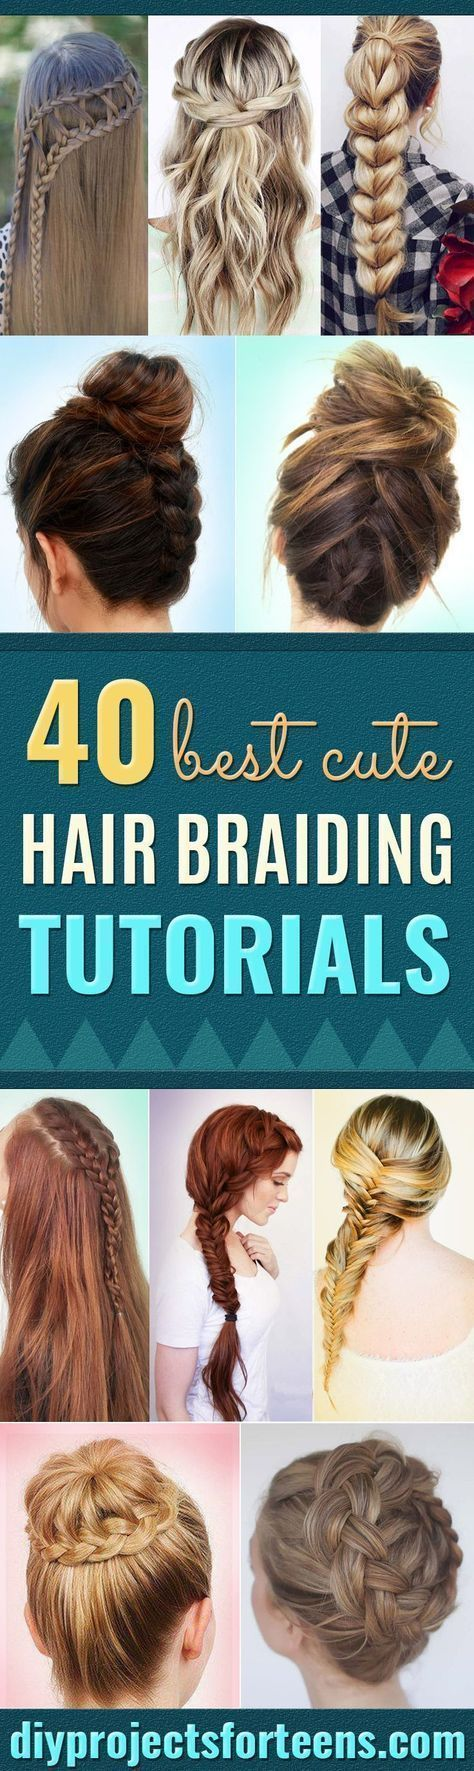 Pin by craig nadine on braids hairstyles in pinterest hair